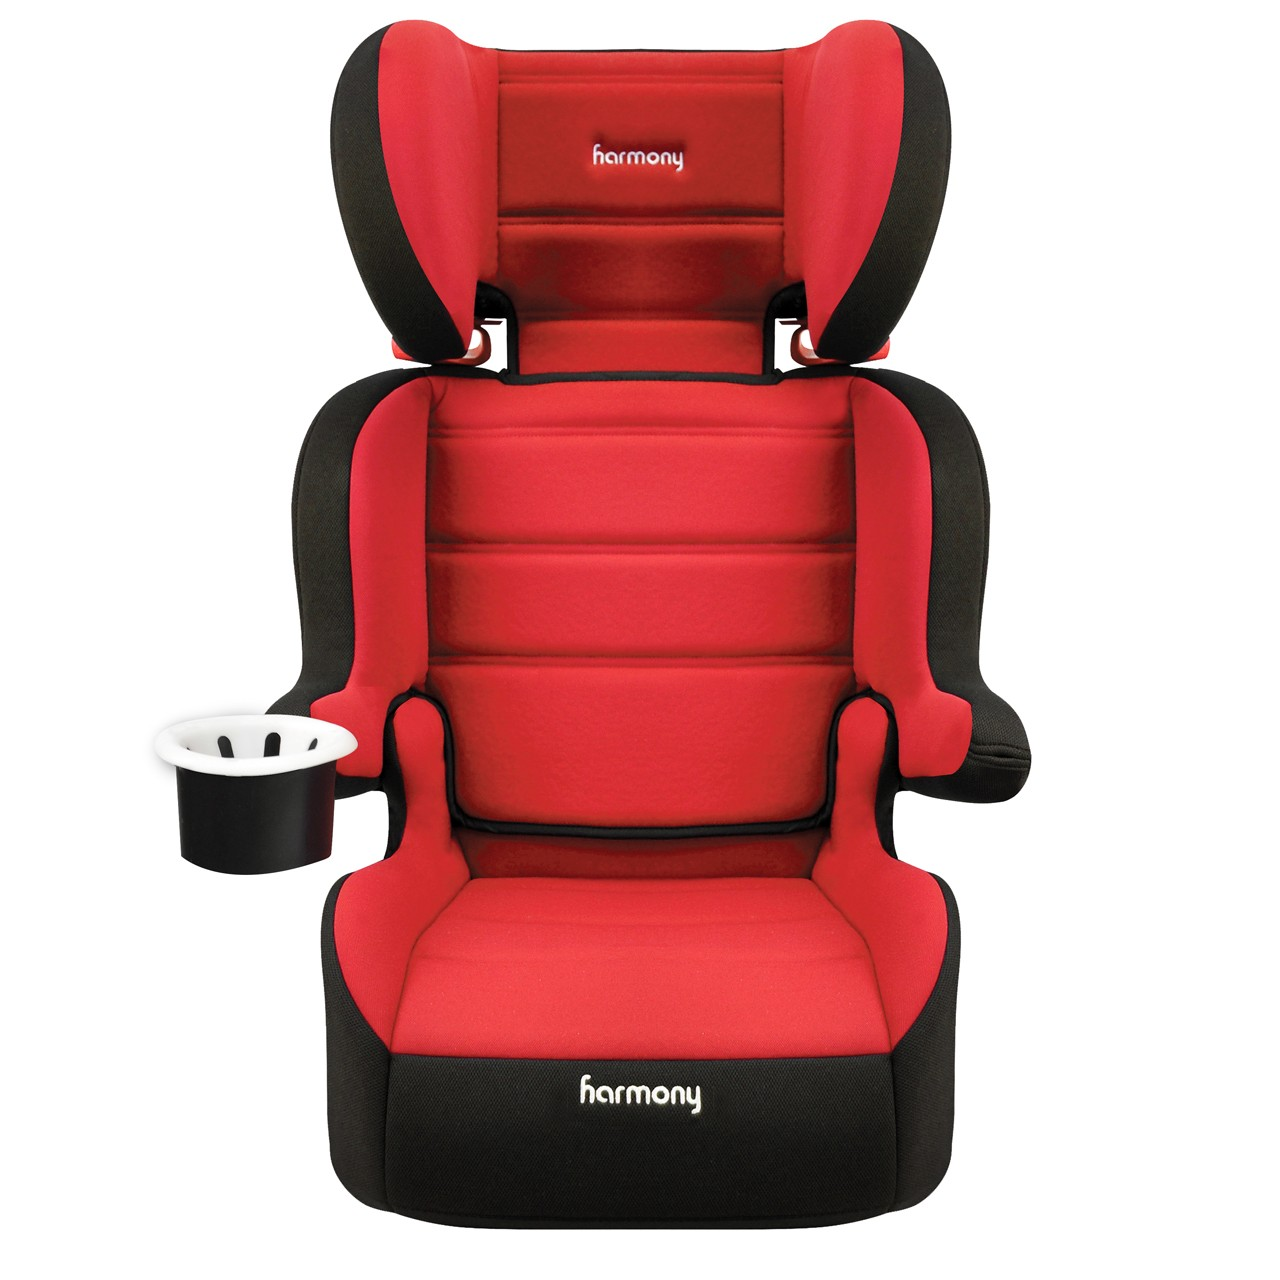 harmony booster seat instructions video